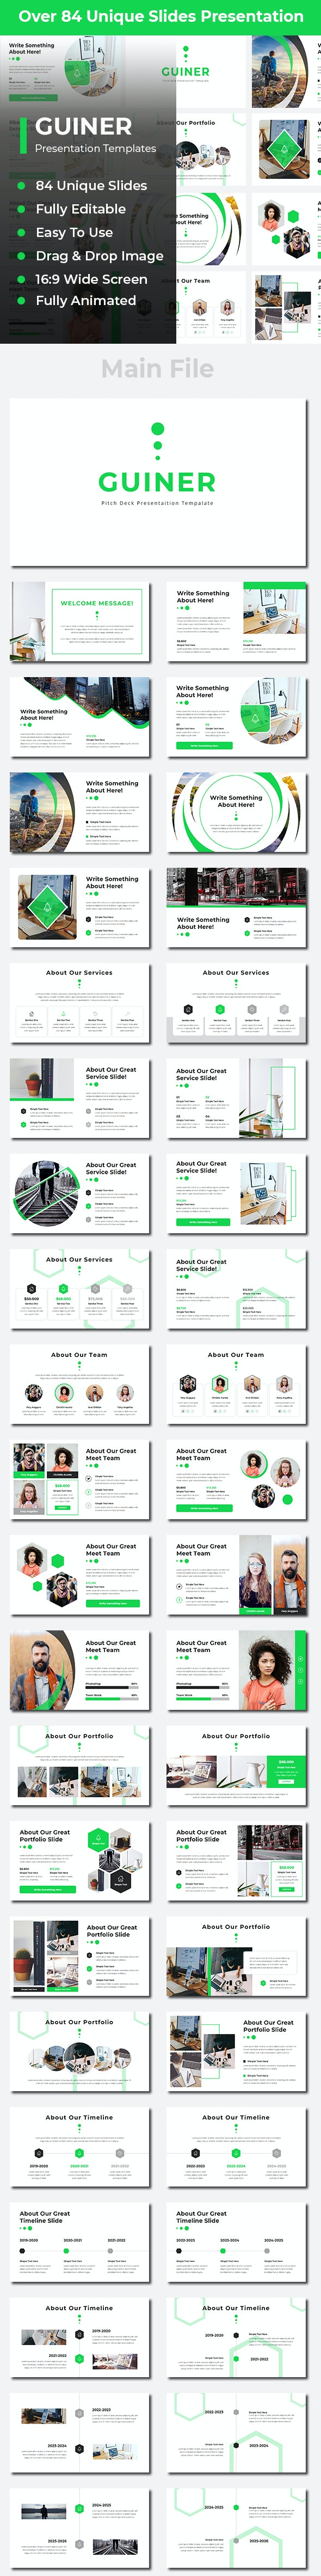 Guiner Pitch Deck PowerPoint - Business PowerPoint Templates